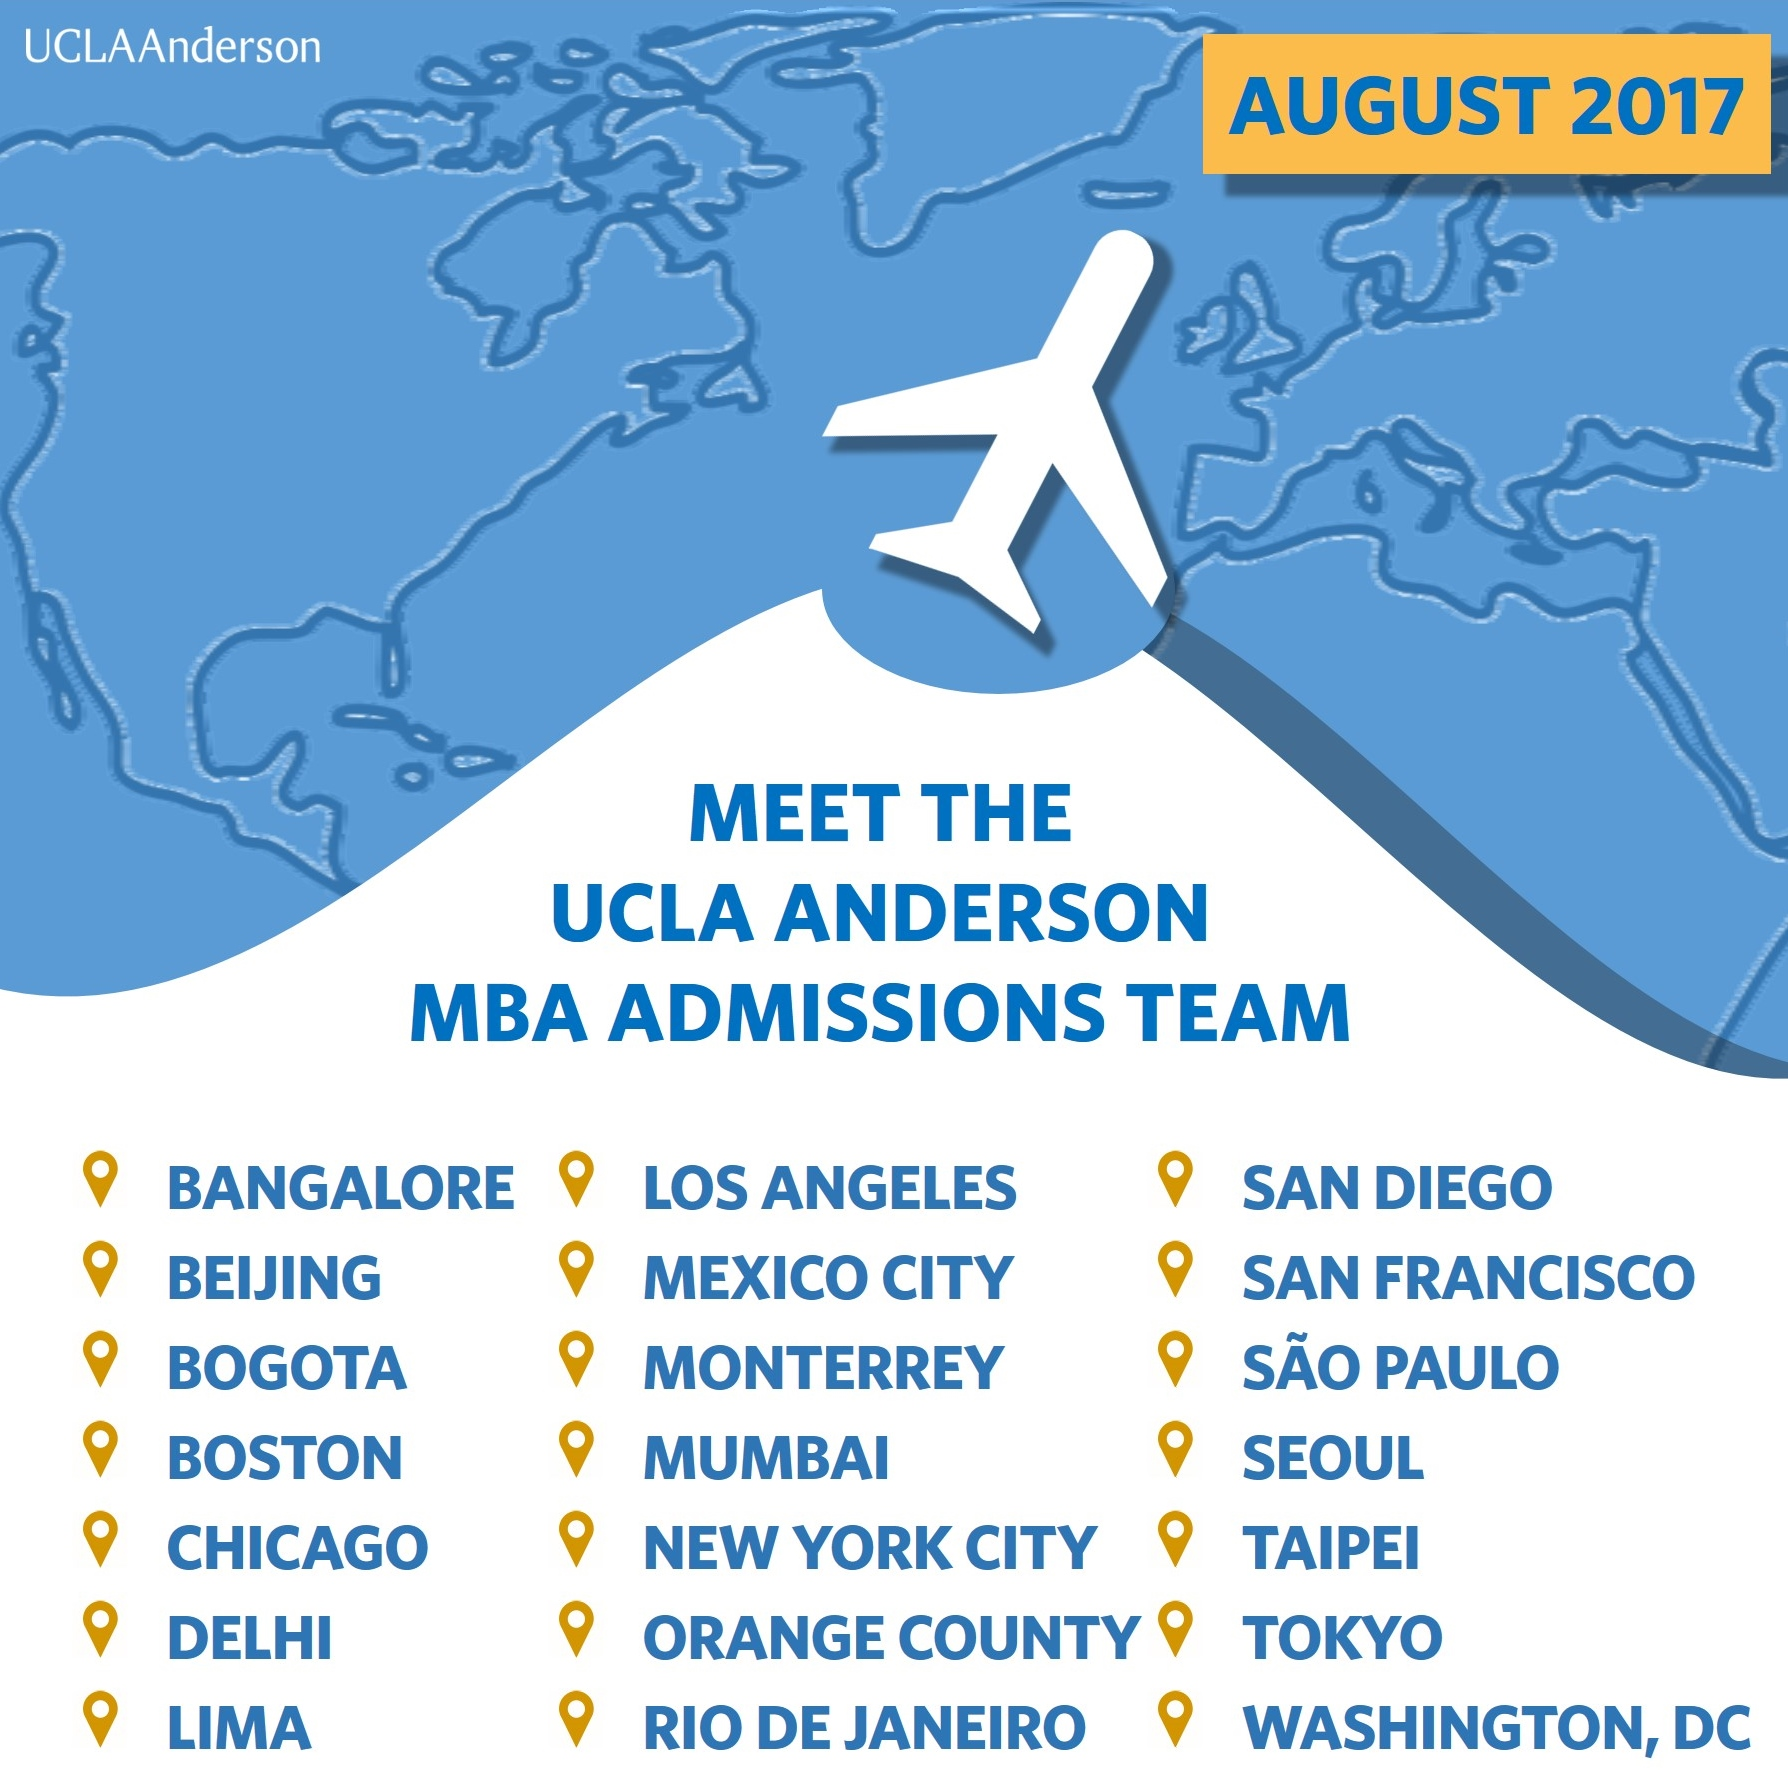 Meet UCLA Anderson Around The World: August 2017 Events